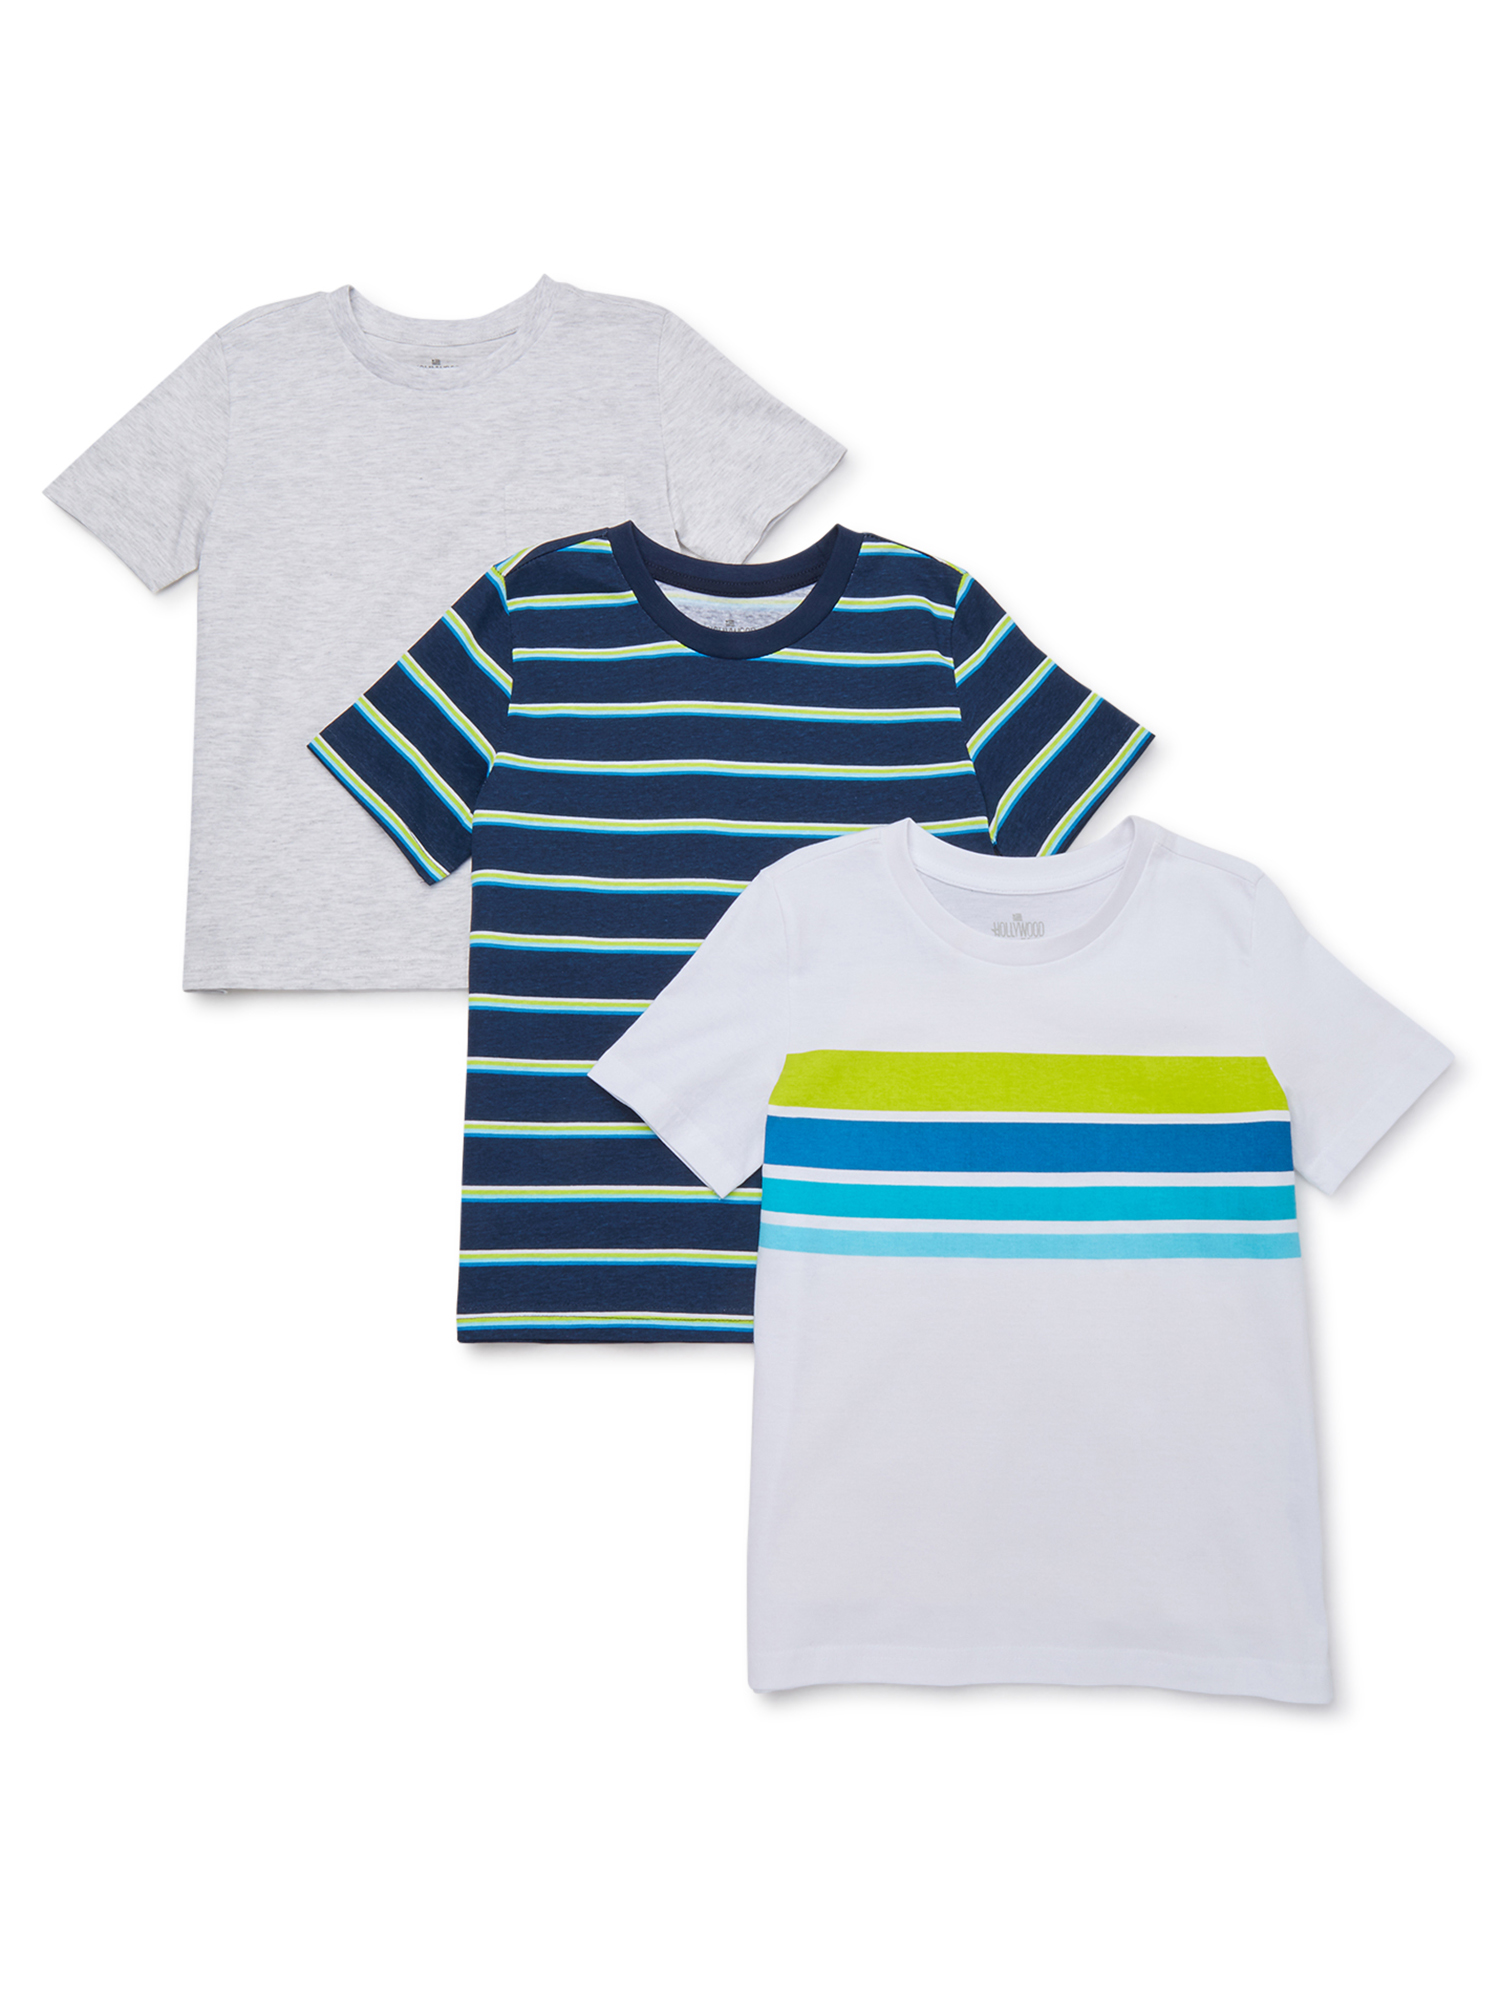 Crazy 8 Baby Boys Toddler Short Sleeve Spring Graphic Tee